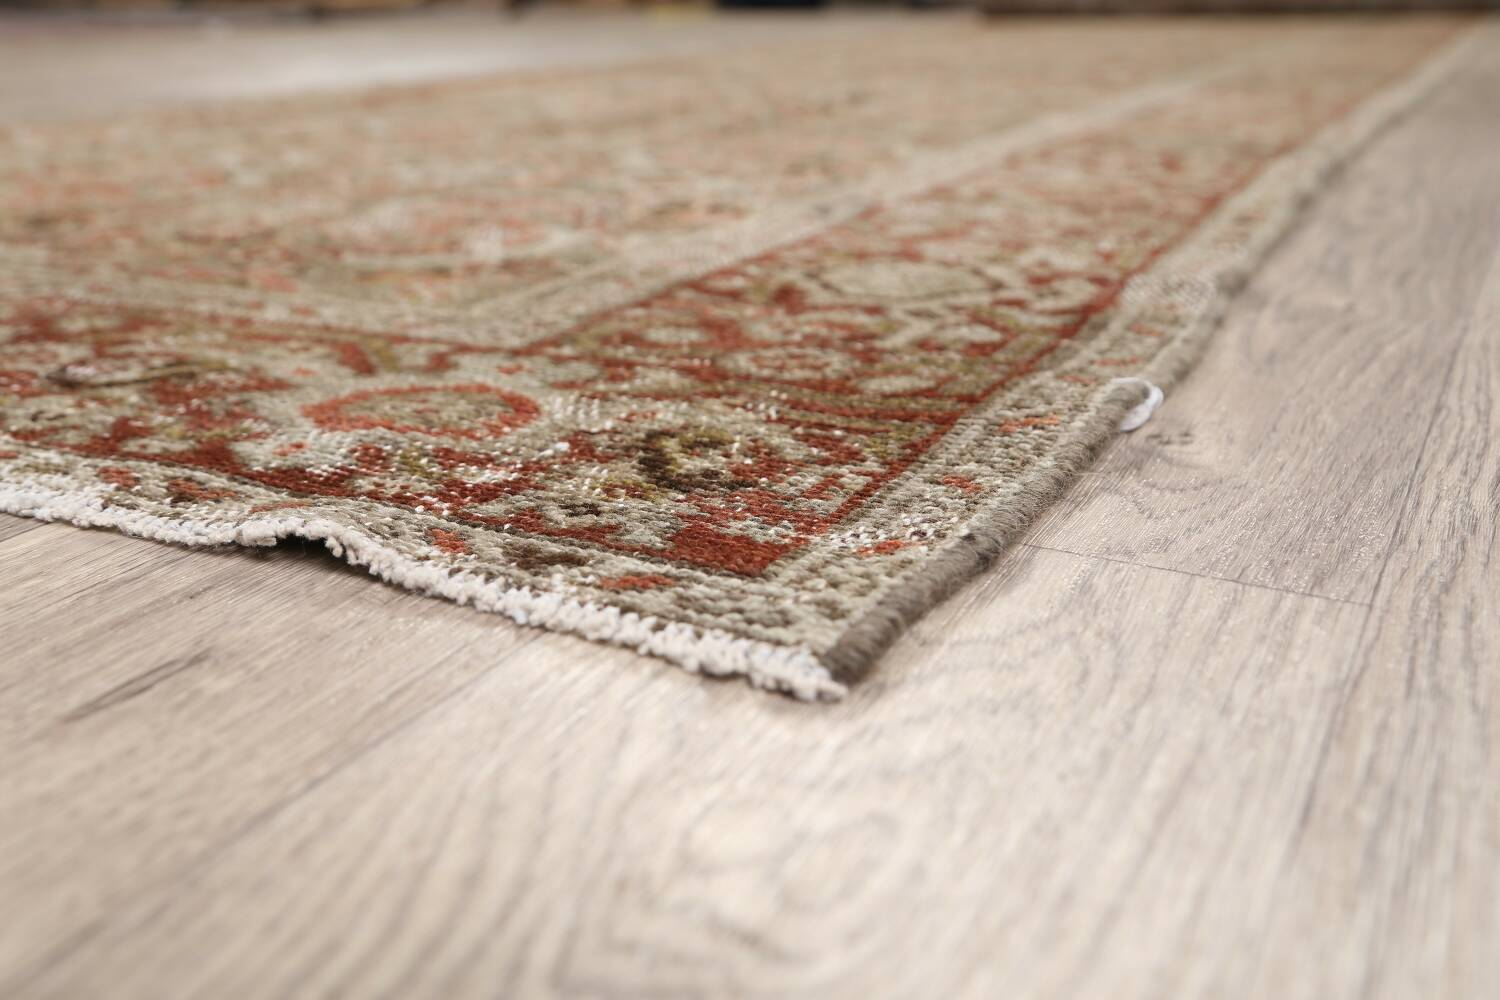 Pre-1900 Antique Malayer Persian Runner Rug 2x16 image 6